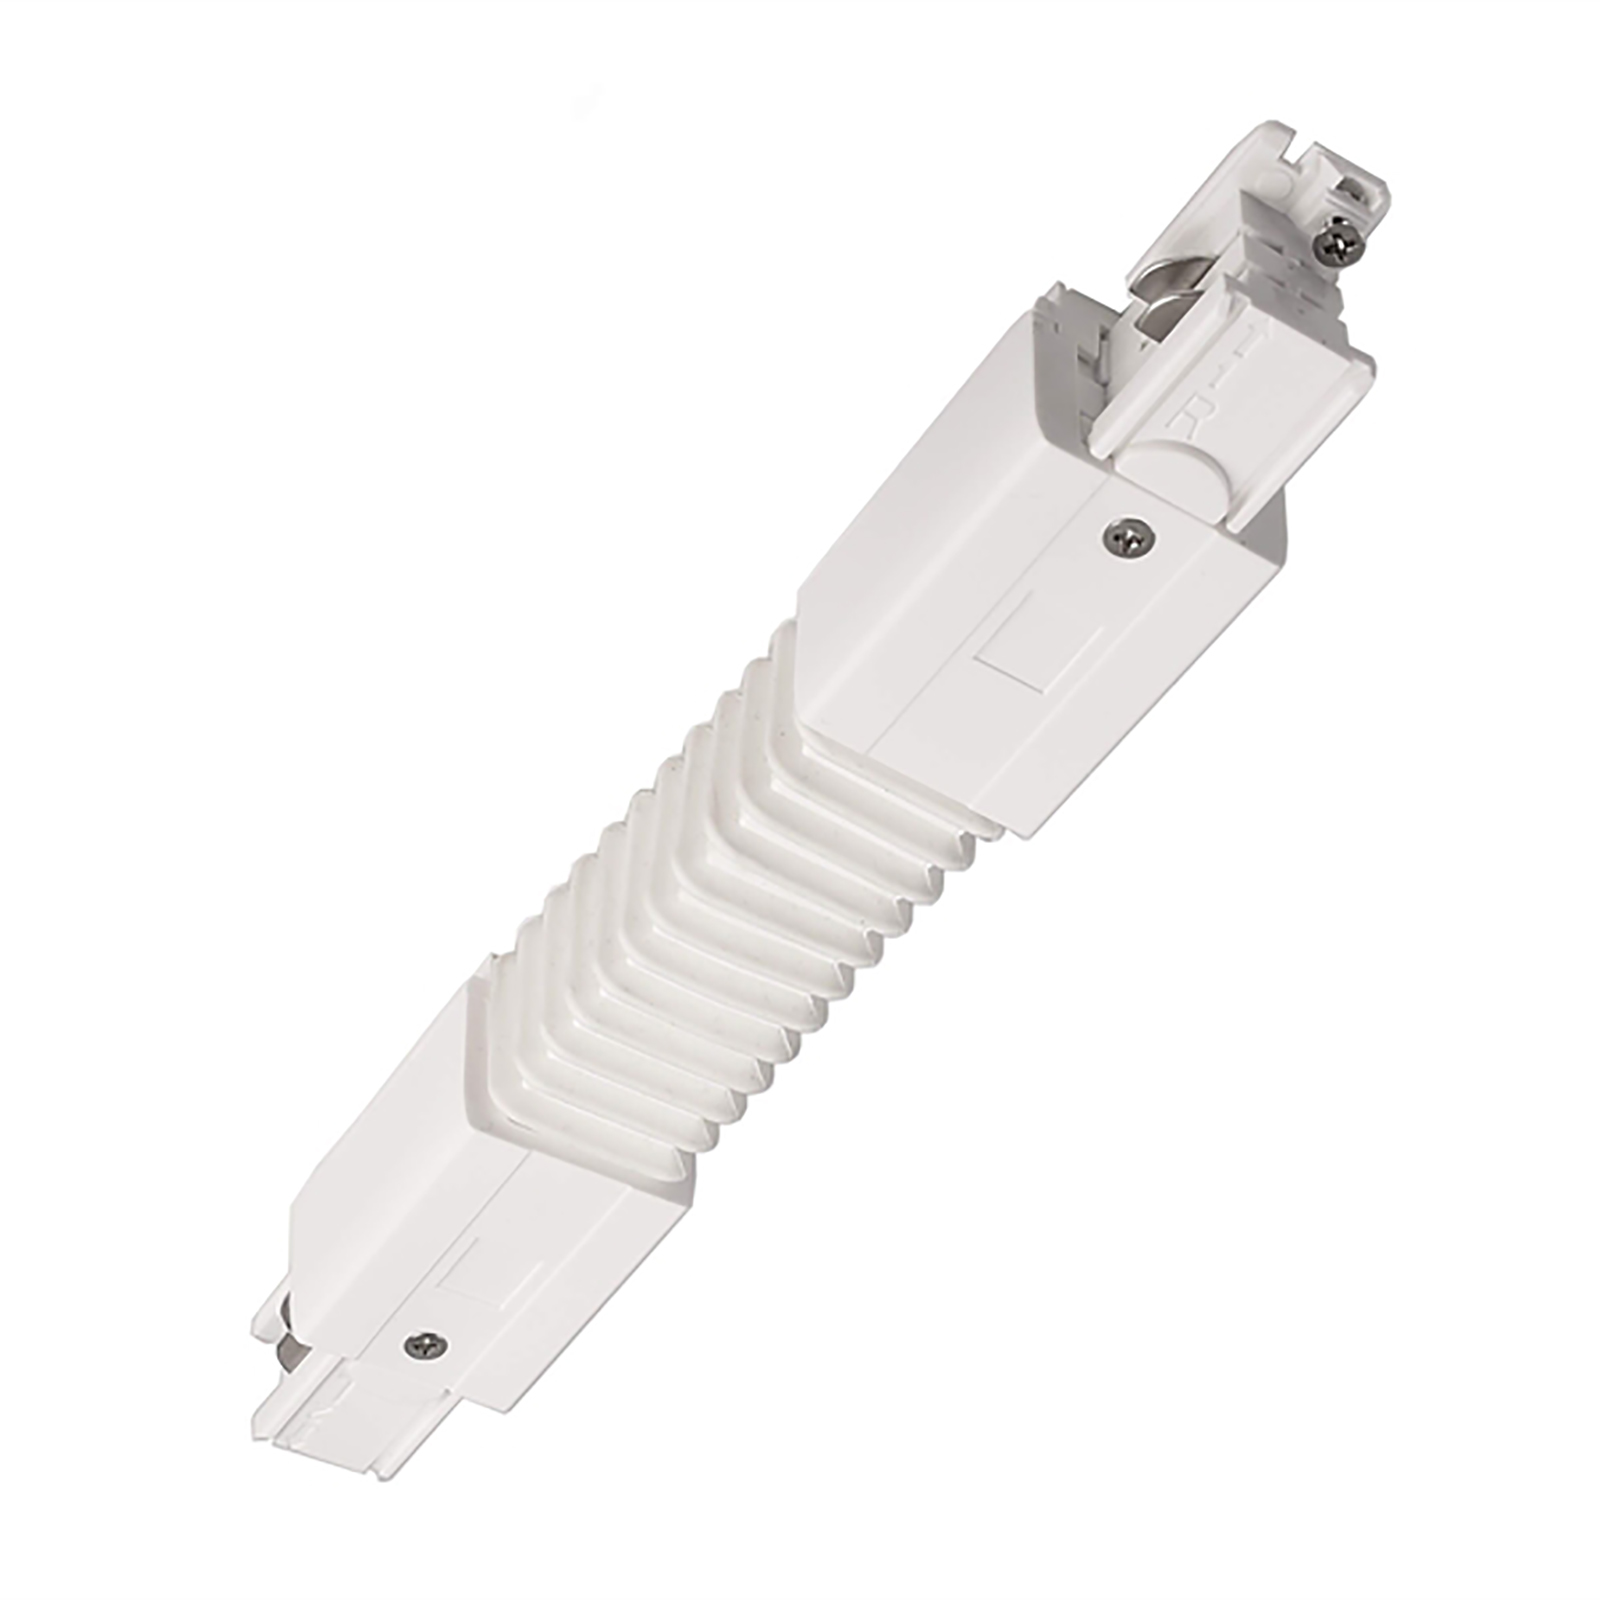 Connector flexible binary three-phase flexible connectors and power rails 3-phase